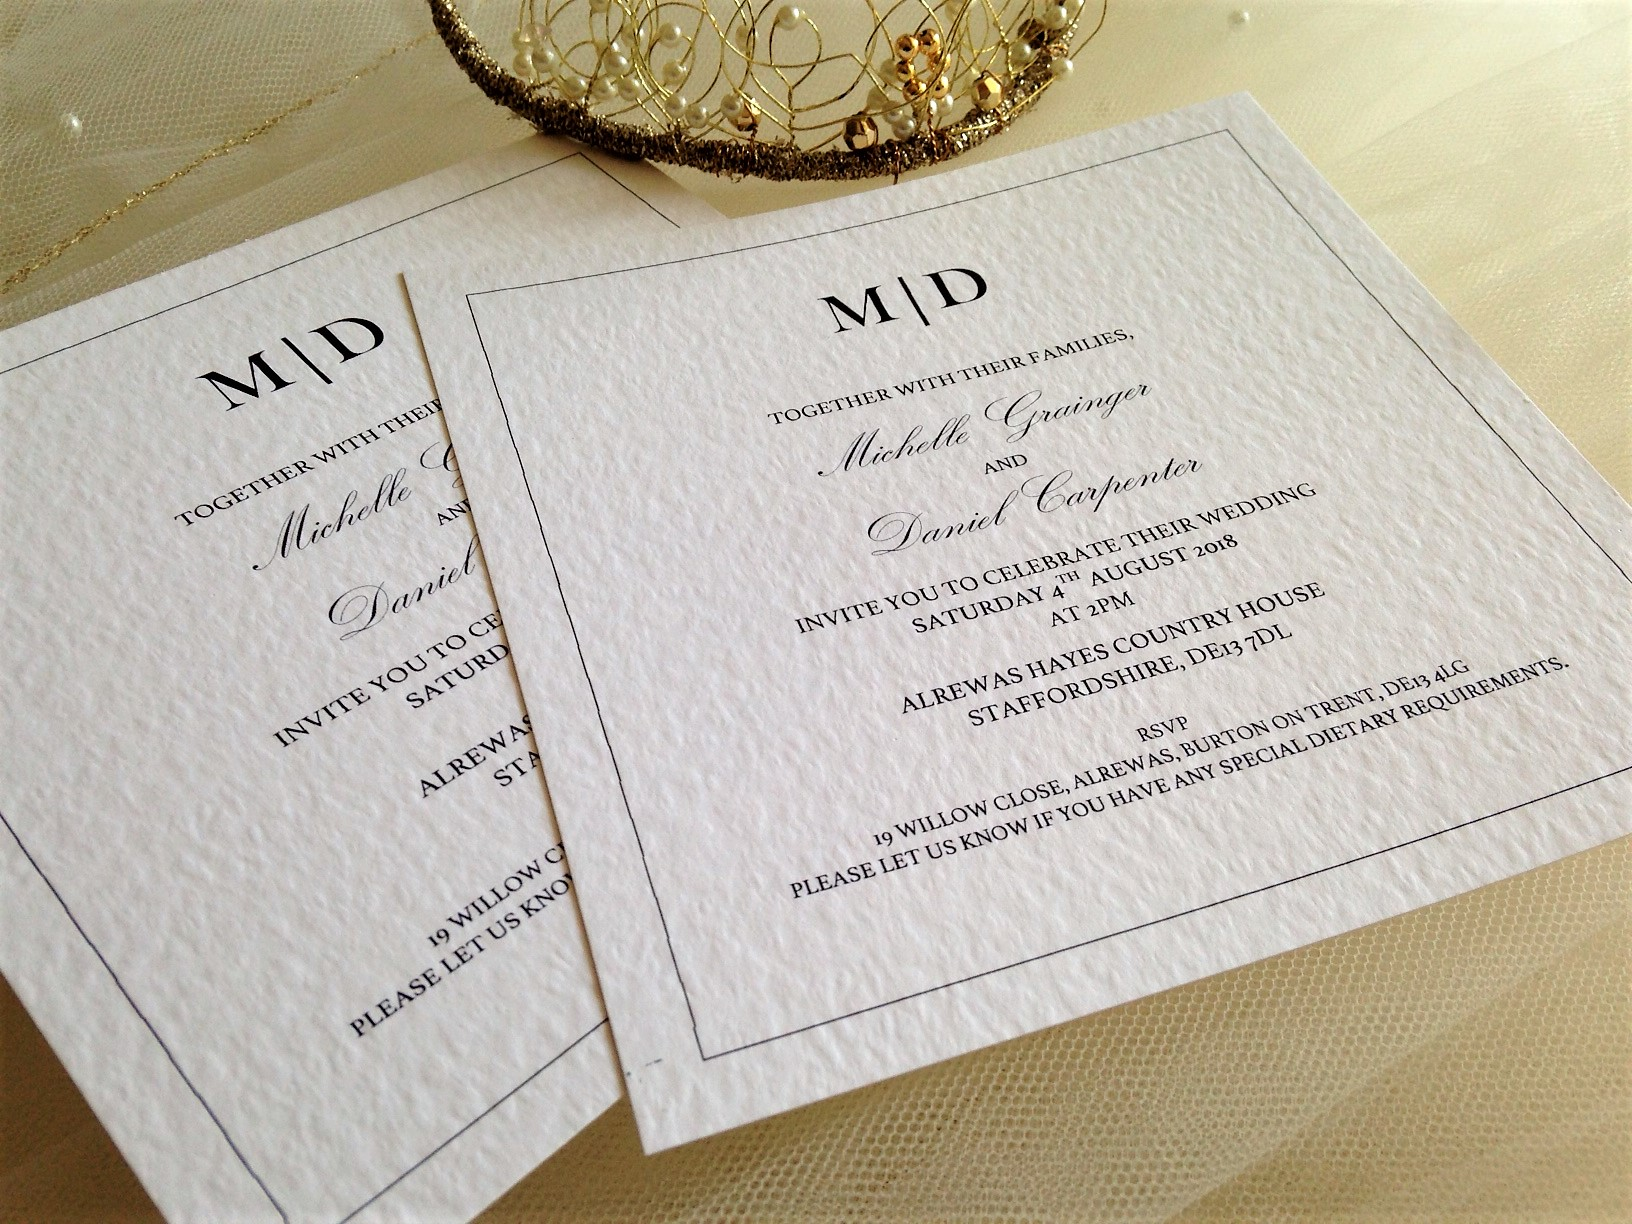 Wedding Invitations Make Your Own: Make Your Own Wedding Invitations, Is There Any Need At